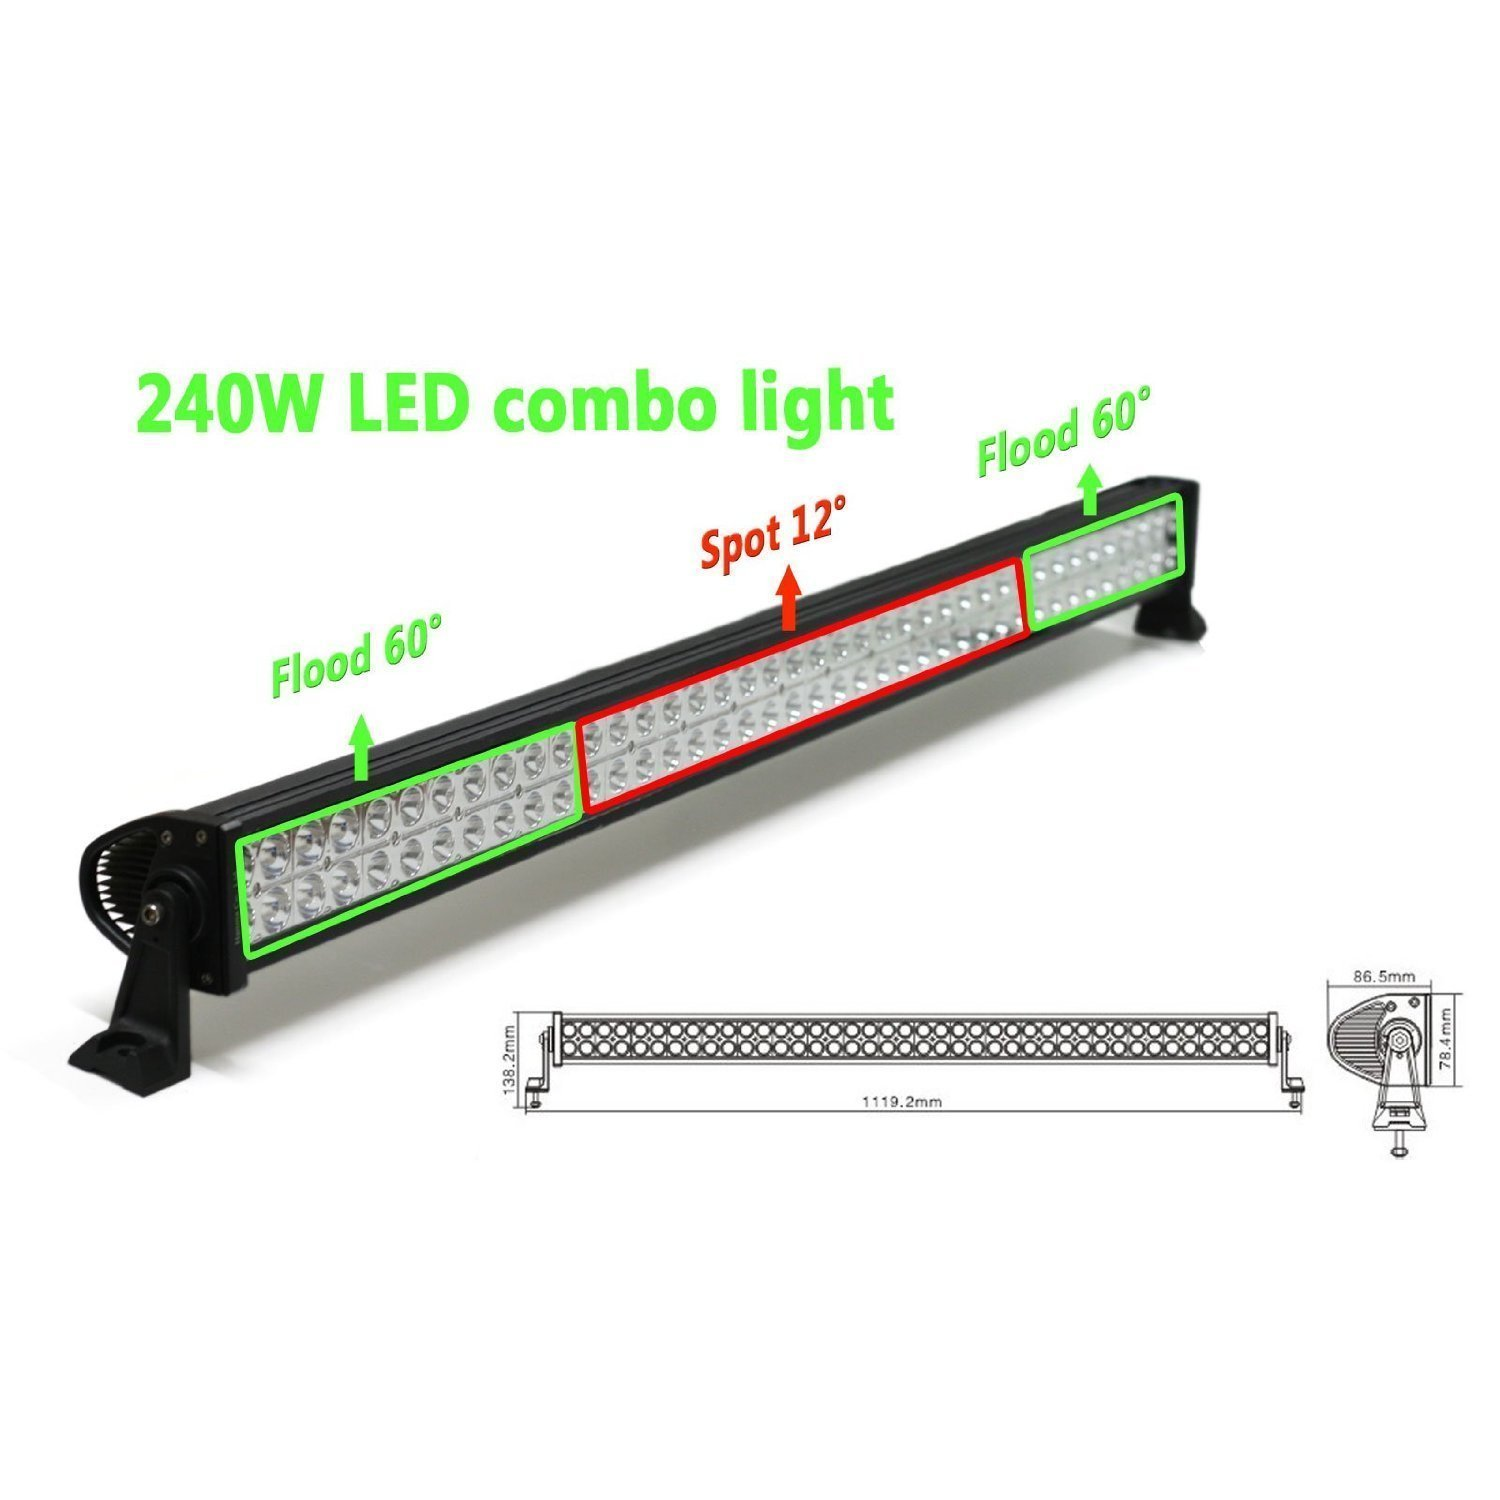 amazon com new world motoring 42 off road extra led light bar amazon com new world motoring 42 off road extra led light bar cree 240w flood spot combo beam automotive